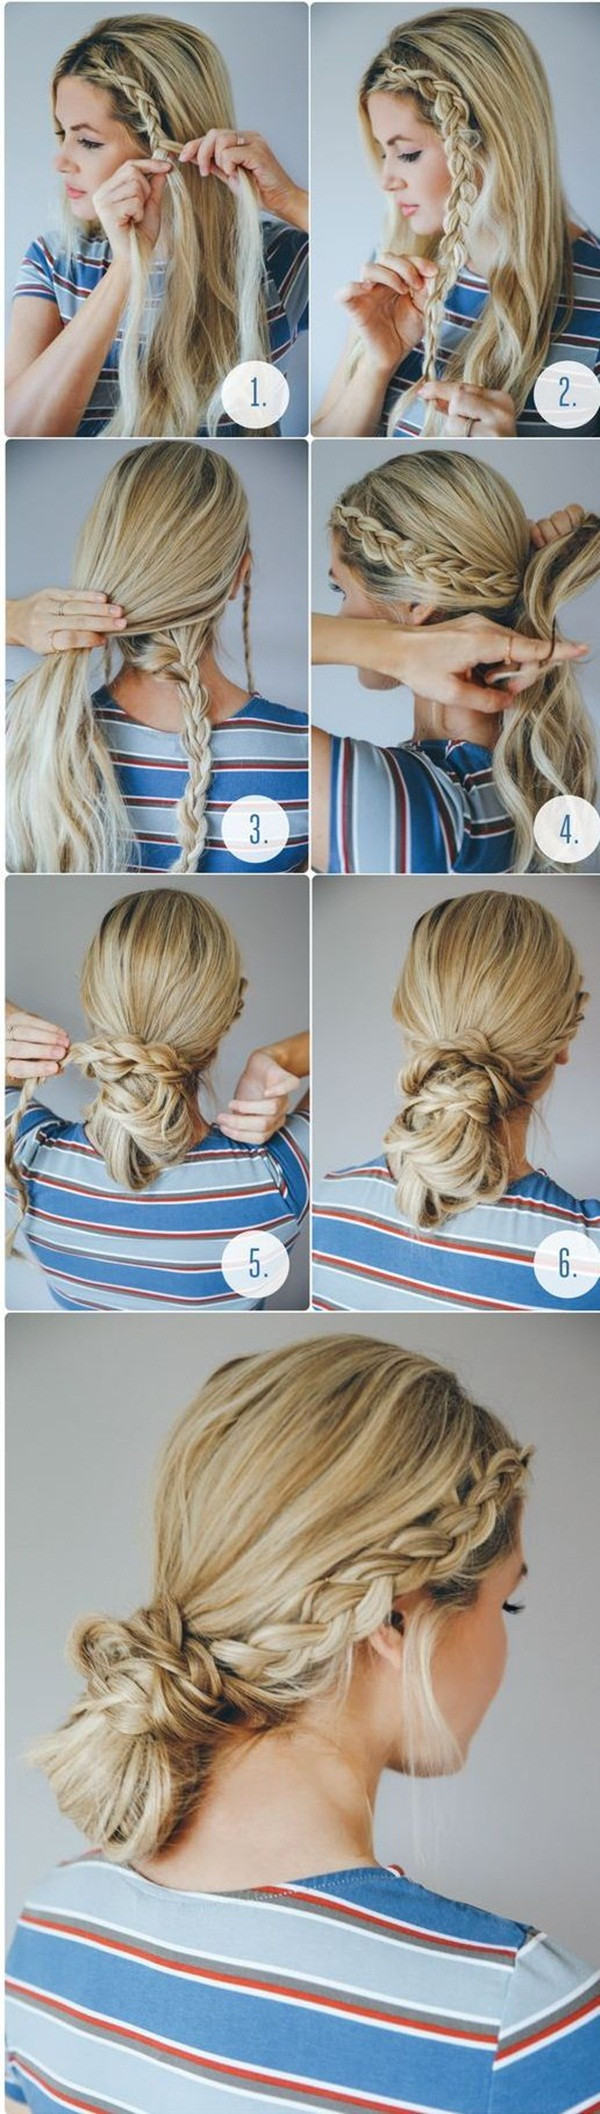 Best ideas about 10 Easy Hairstyles . Save or Pin 40 Easy Hairstyles for Schools to Try in 2016 Now.